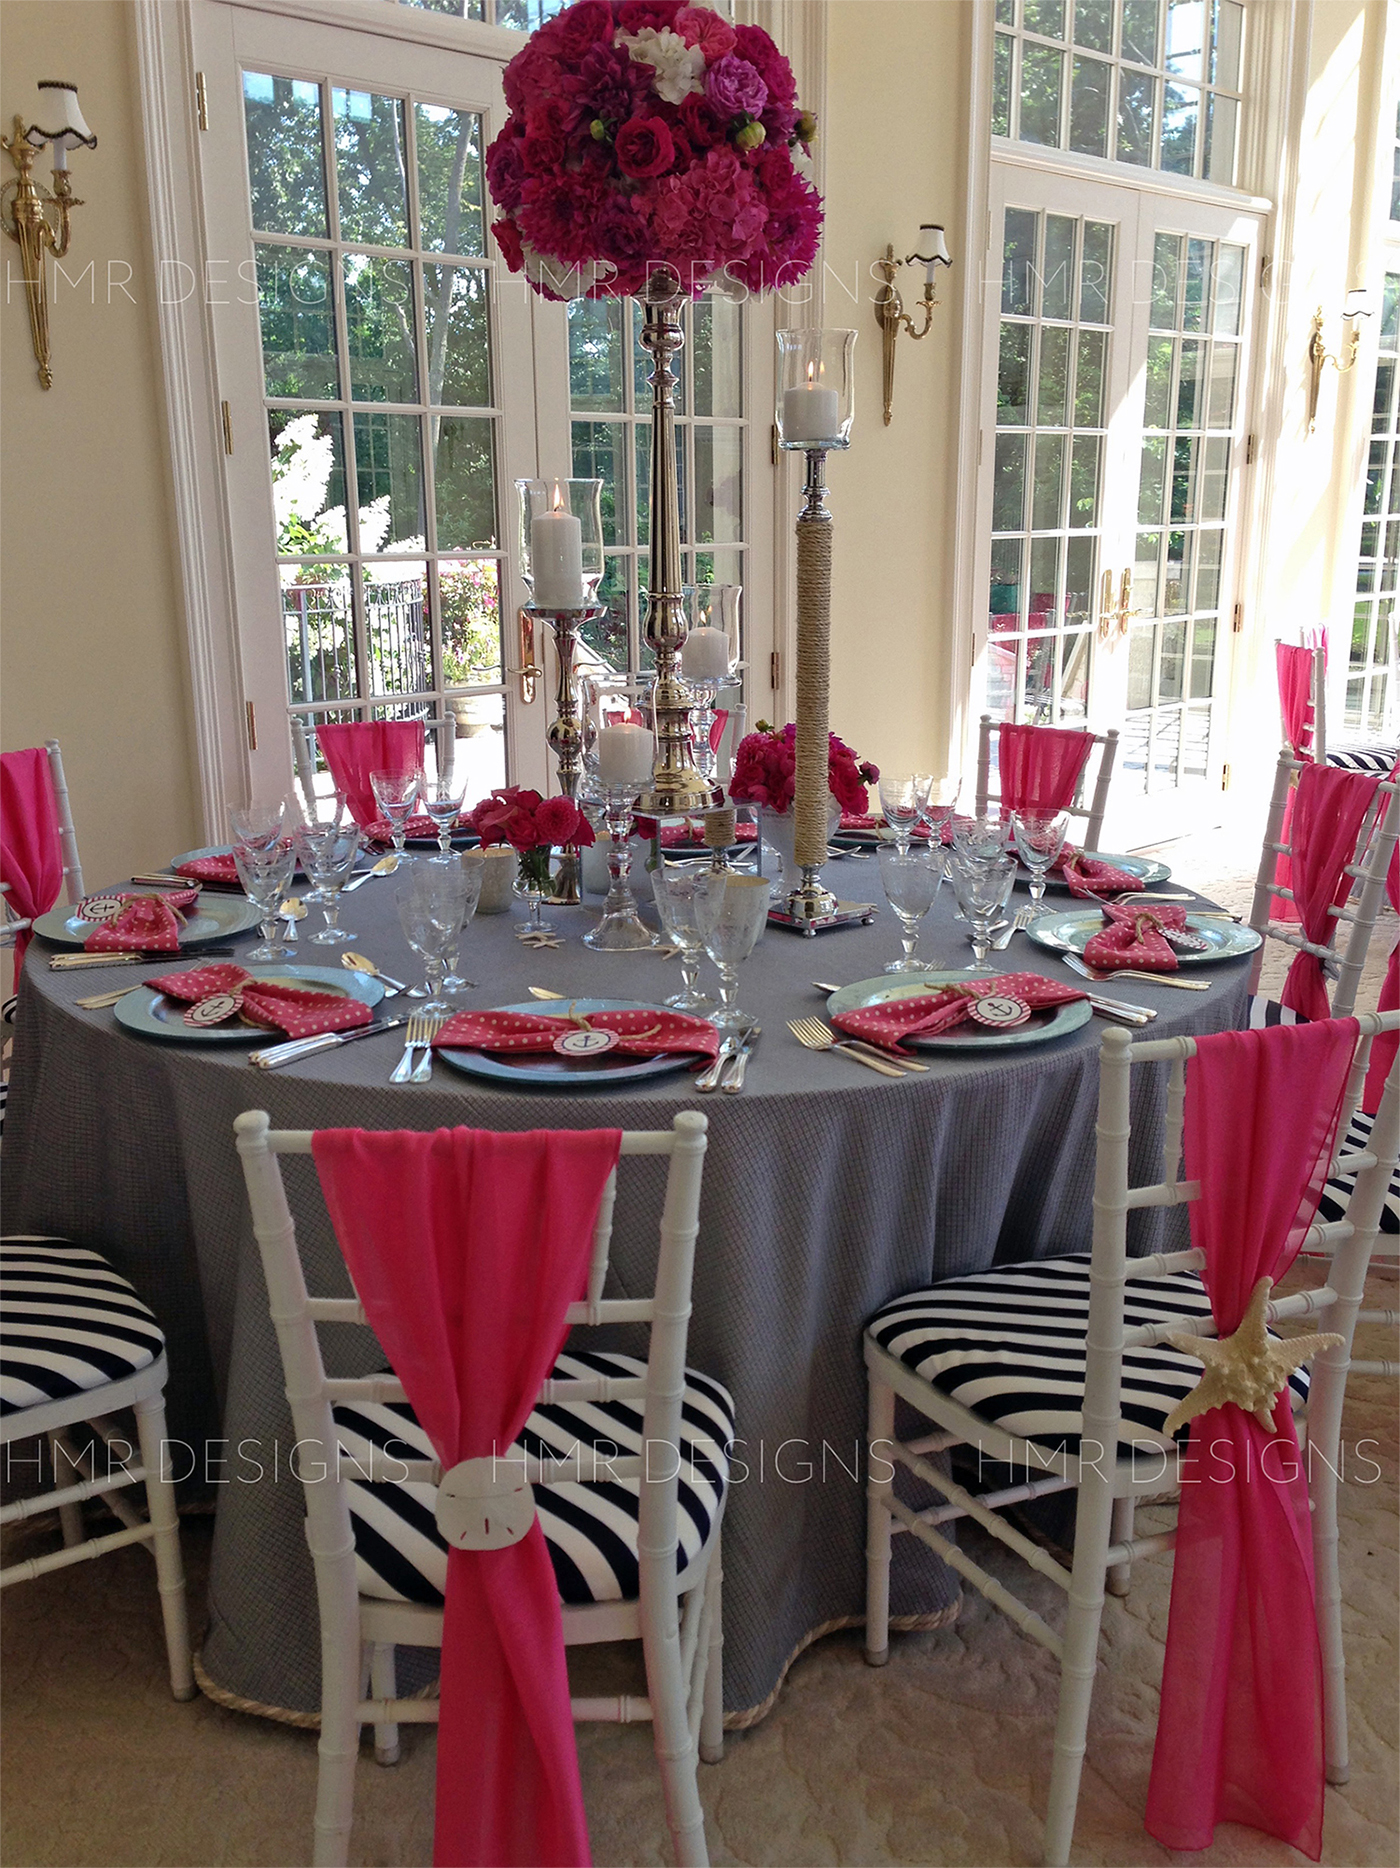 Nautical themed decor and sleek silver candlesticks adorn a table for a baby shower designed by HMR Designs